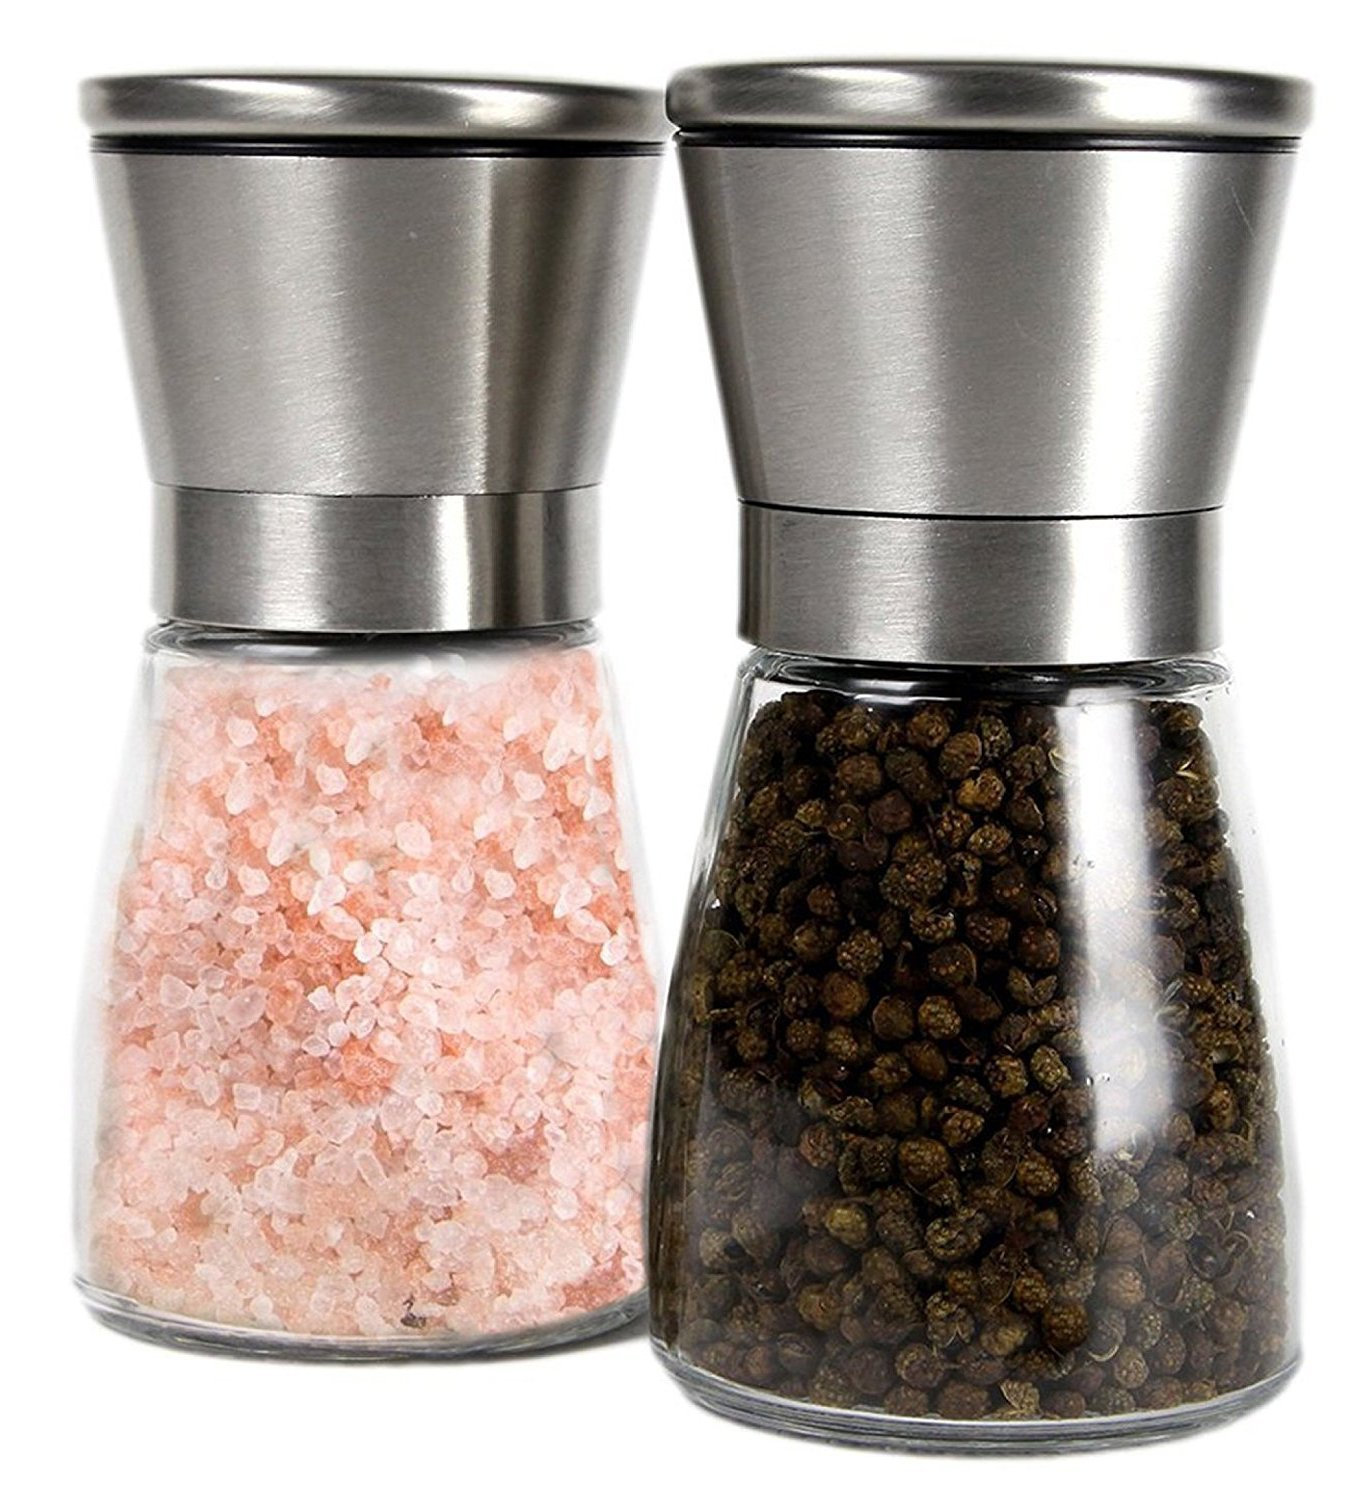 Amazon: Premium Stainless Steel Salt And Pepper Grinder Set Of 2   Brushed Stainless Steel Pepper Mill And Salt Mill, Tall Glass Body 4 Oz,